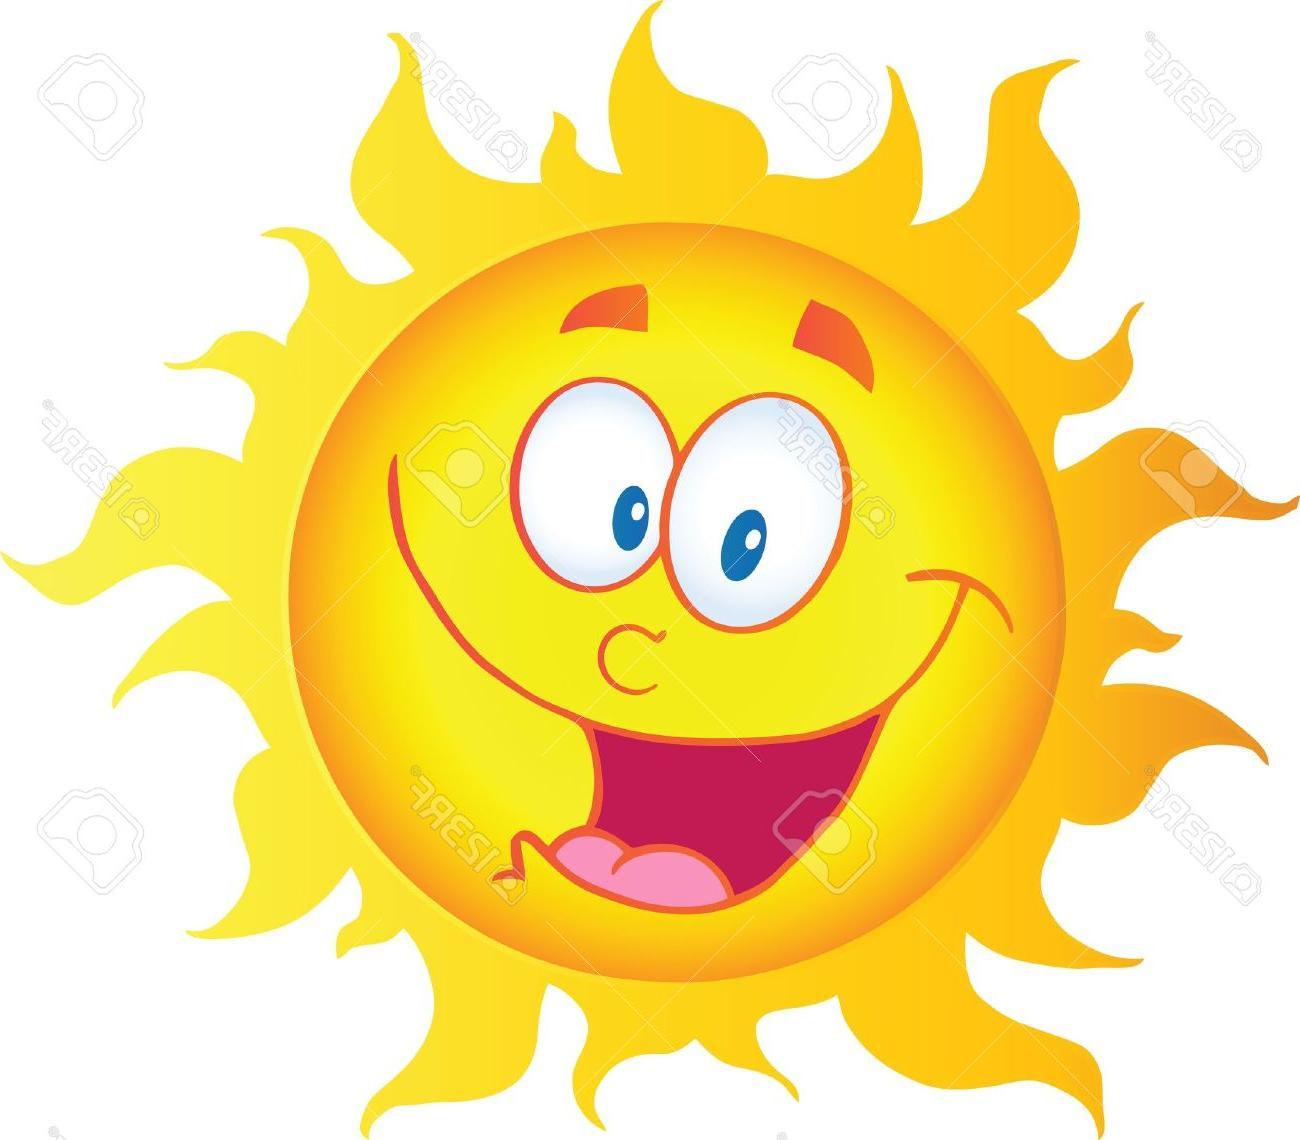 Sun with smiley face clipart image freeuse stock Best Free Sunshine Smiley Face Clip Art Vector Cdr » Free ... image freeuse stock